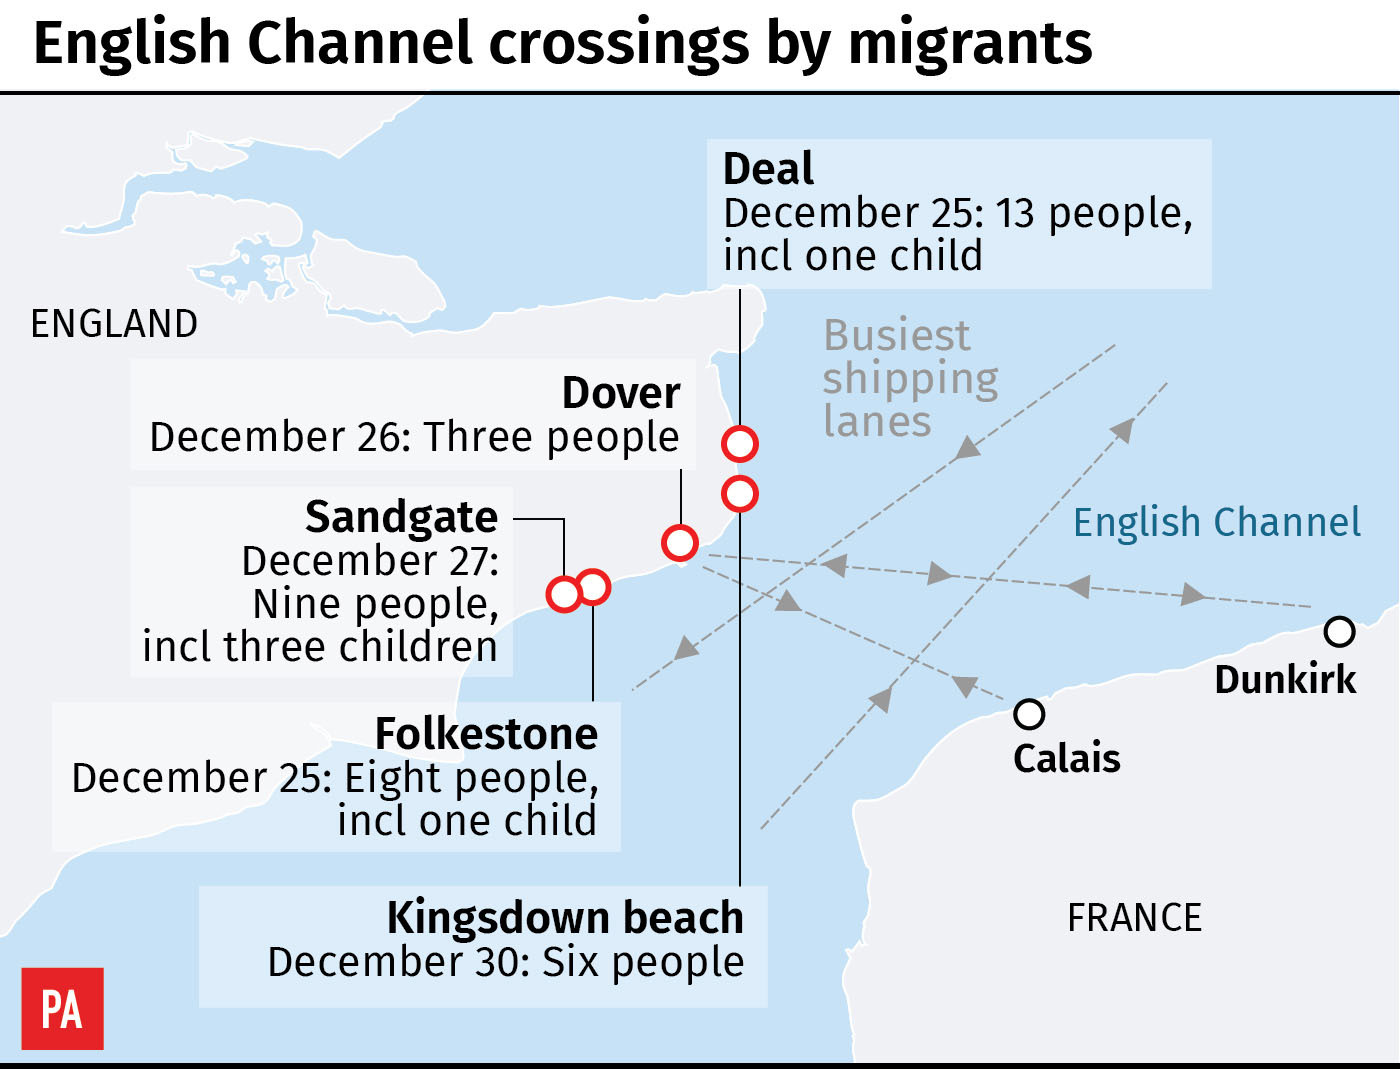 Two held over English Channel migrant crossings